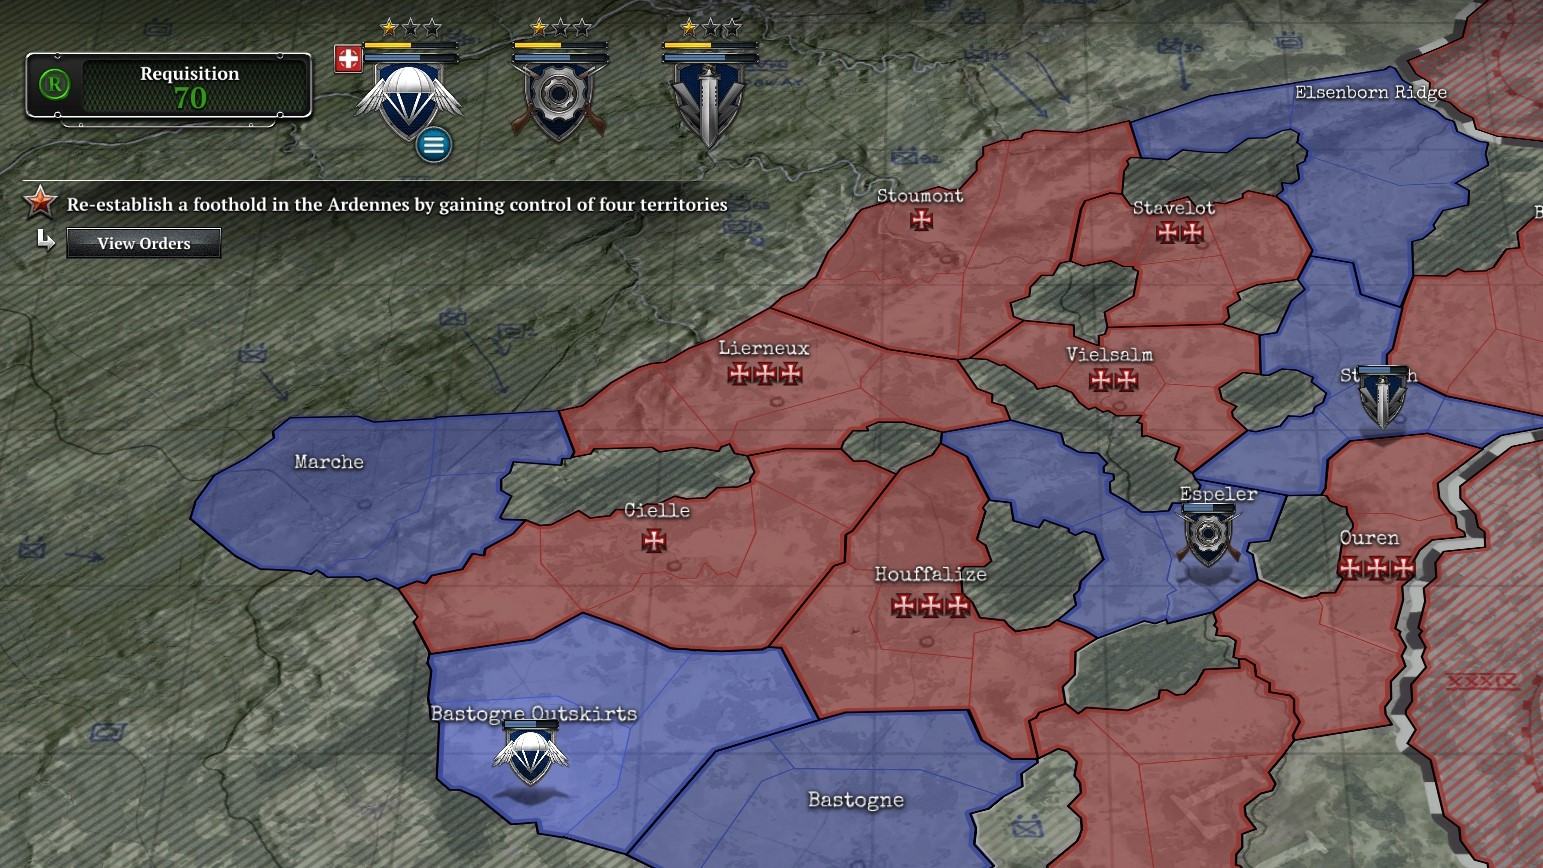 Best ww2 strategy games company of heroes 2 ardennes assault - WW2 games: the best World War II games